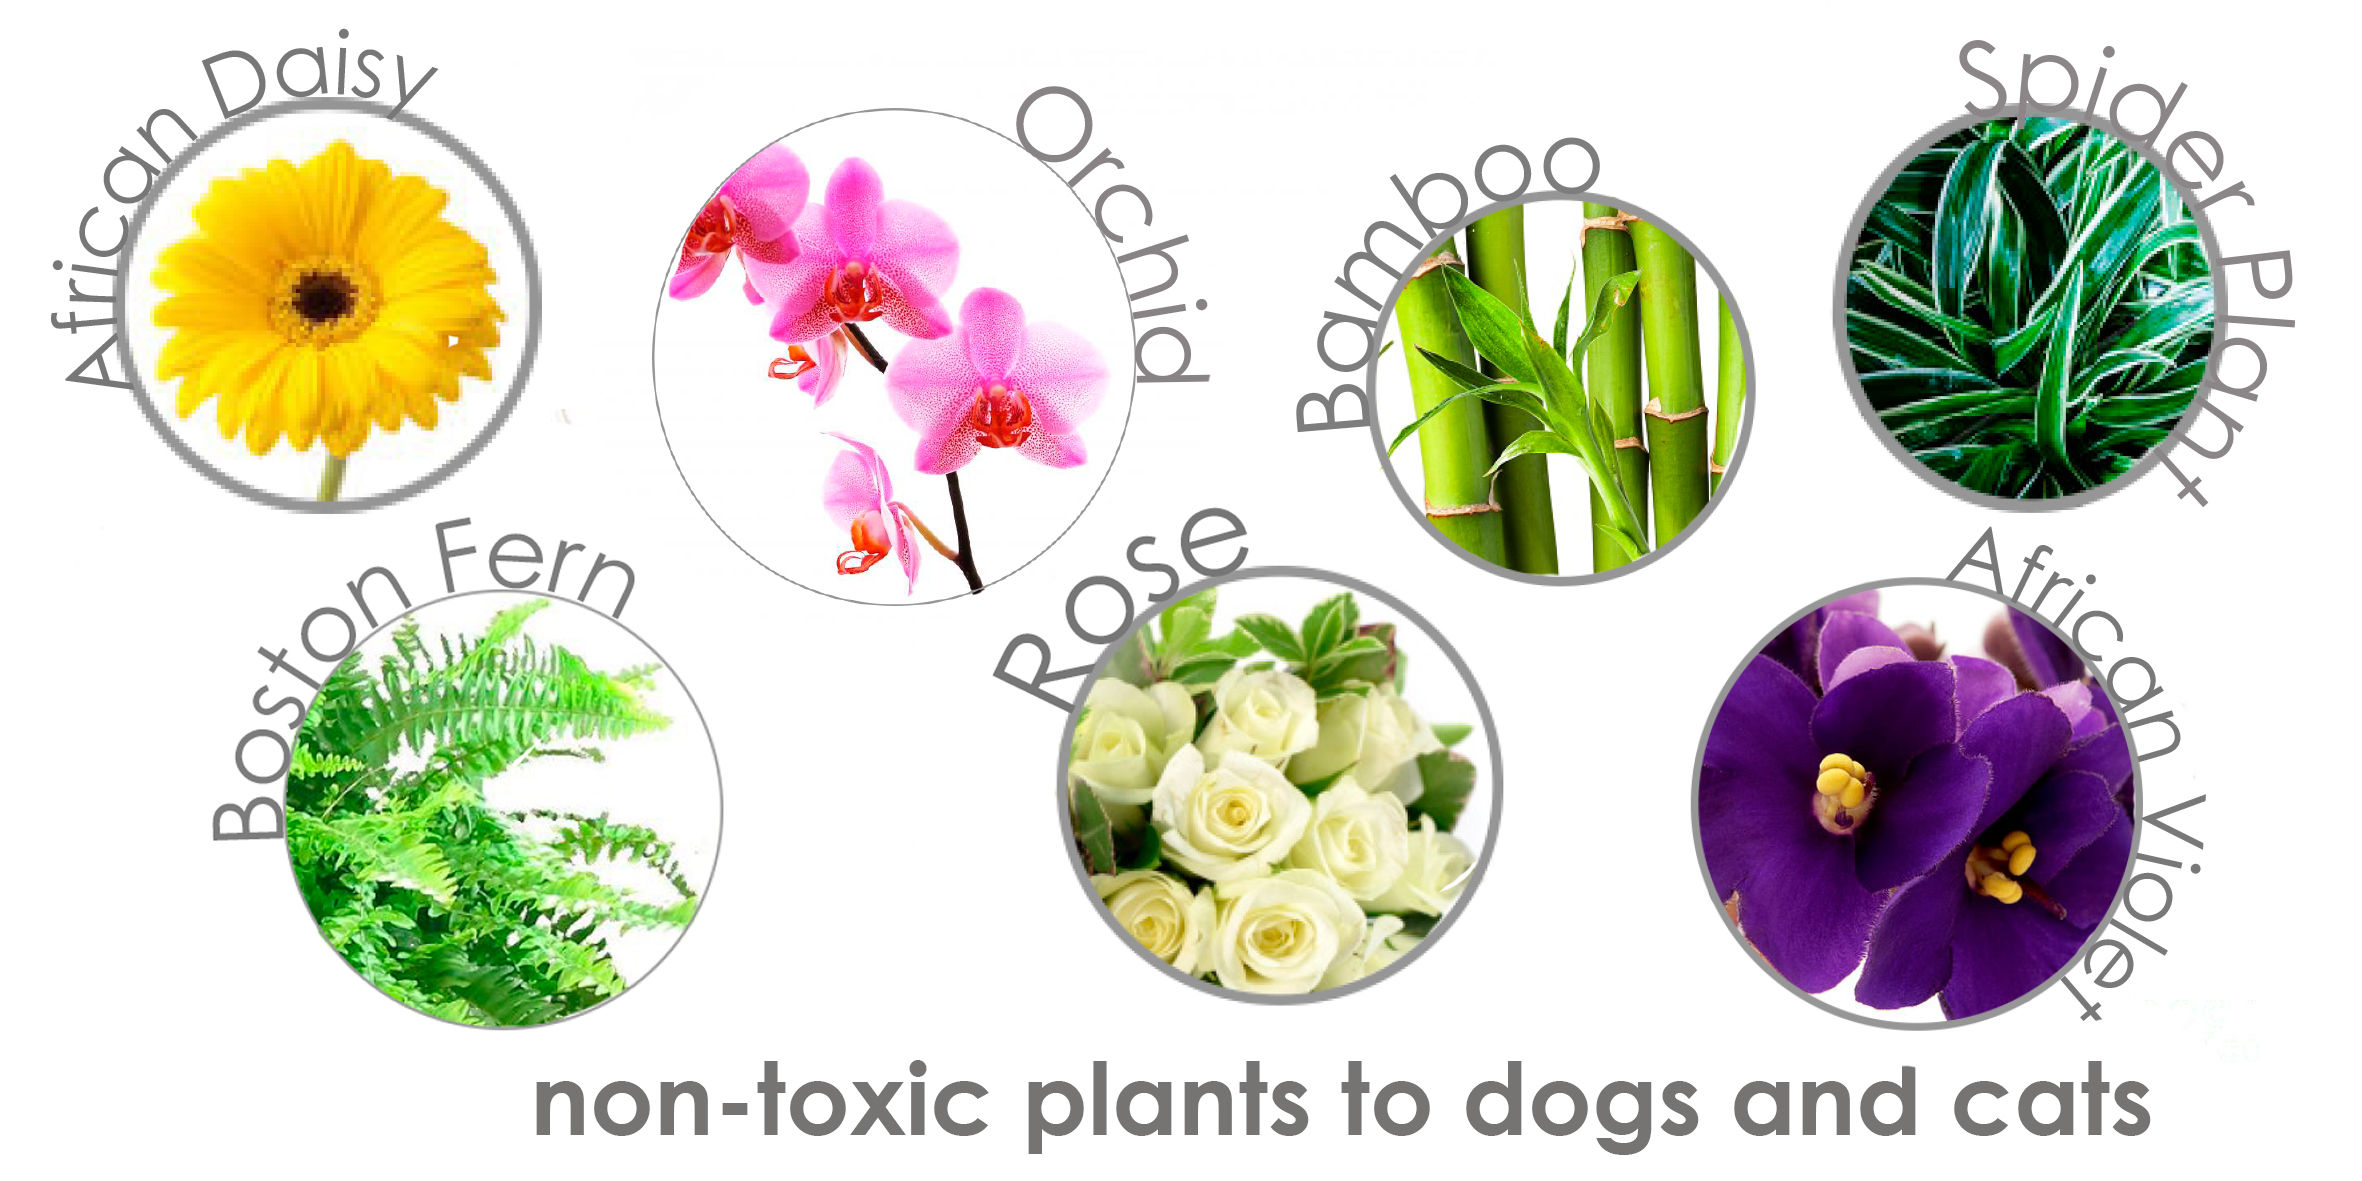 September 2015 stylish paws for Non toxic ferns